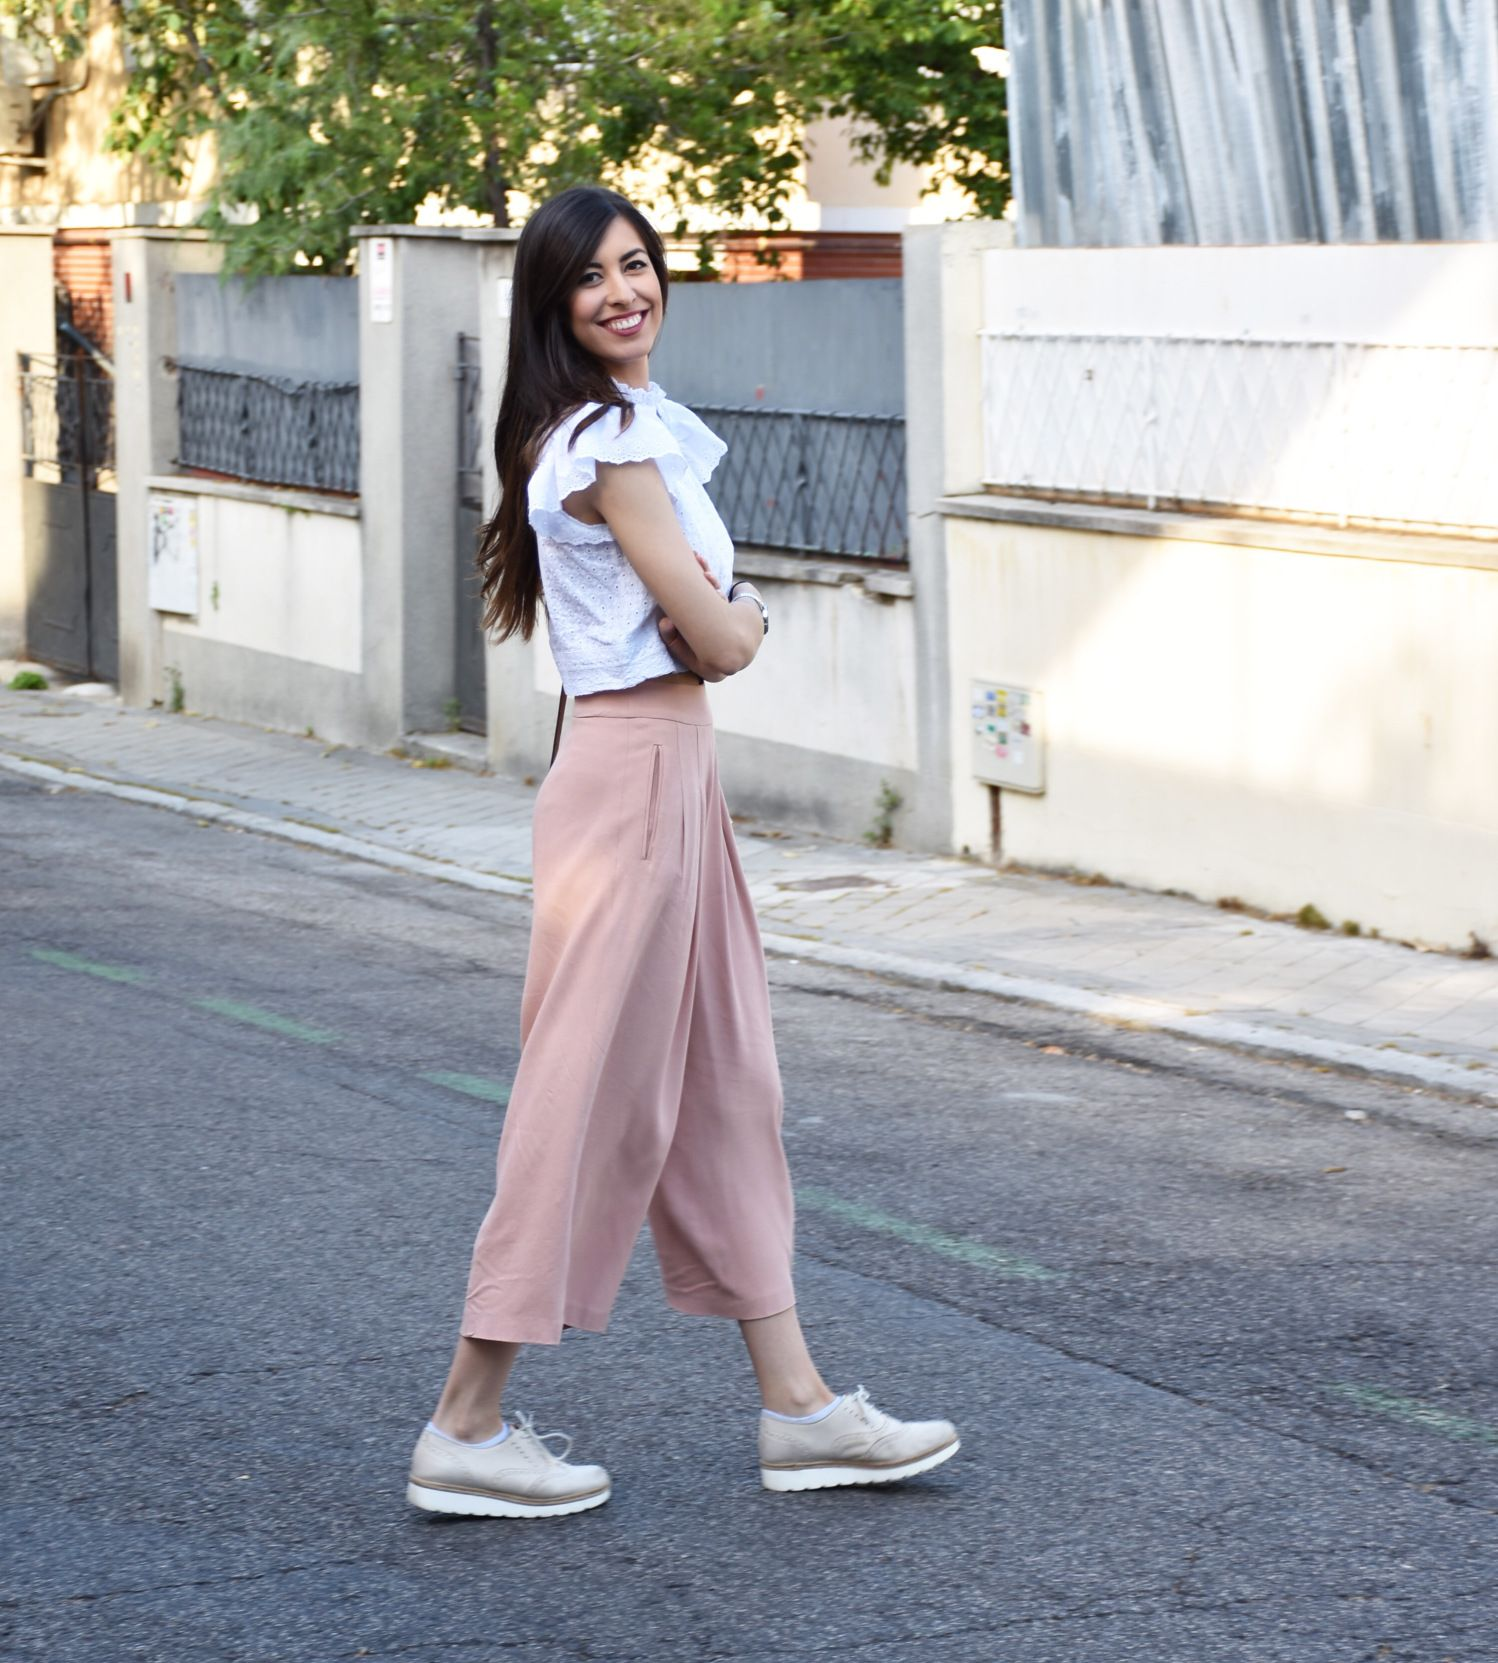 dfadc5f2af5d7 Frilly blouse – midilema Claudia Peris is wearing Zara culottes ...